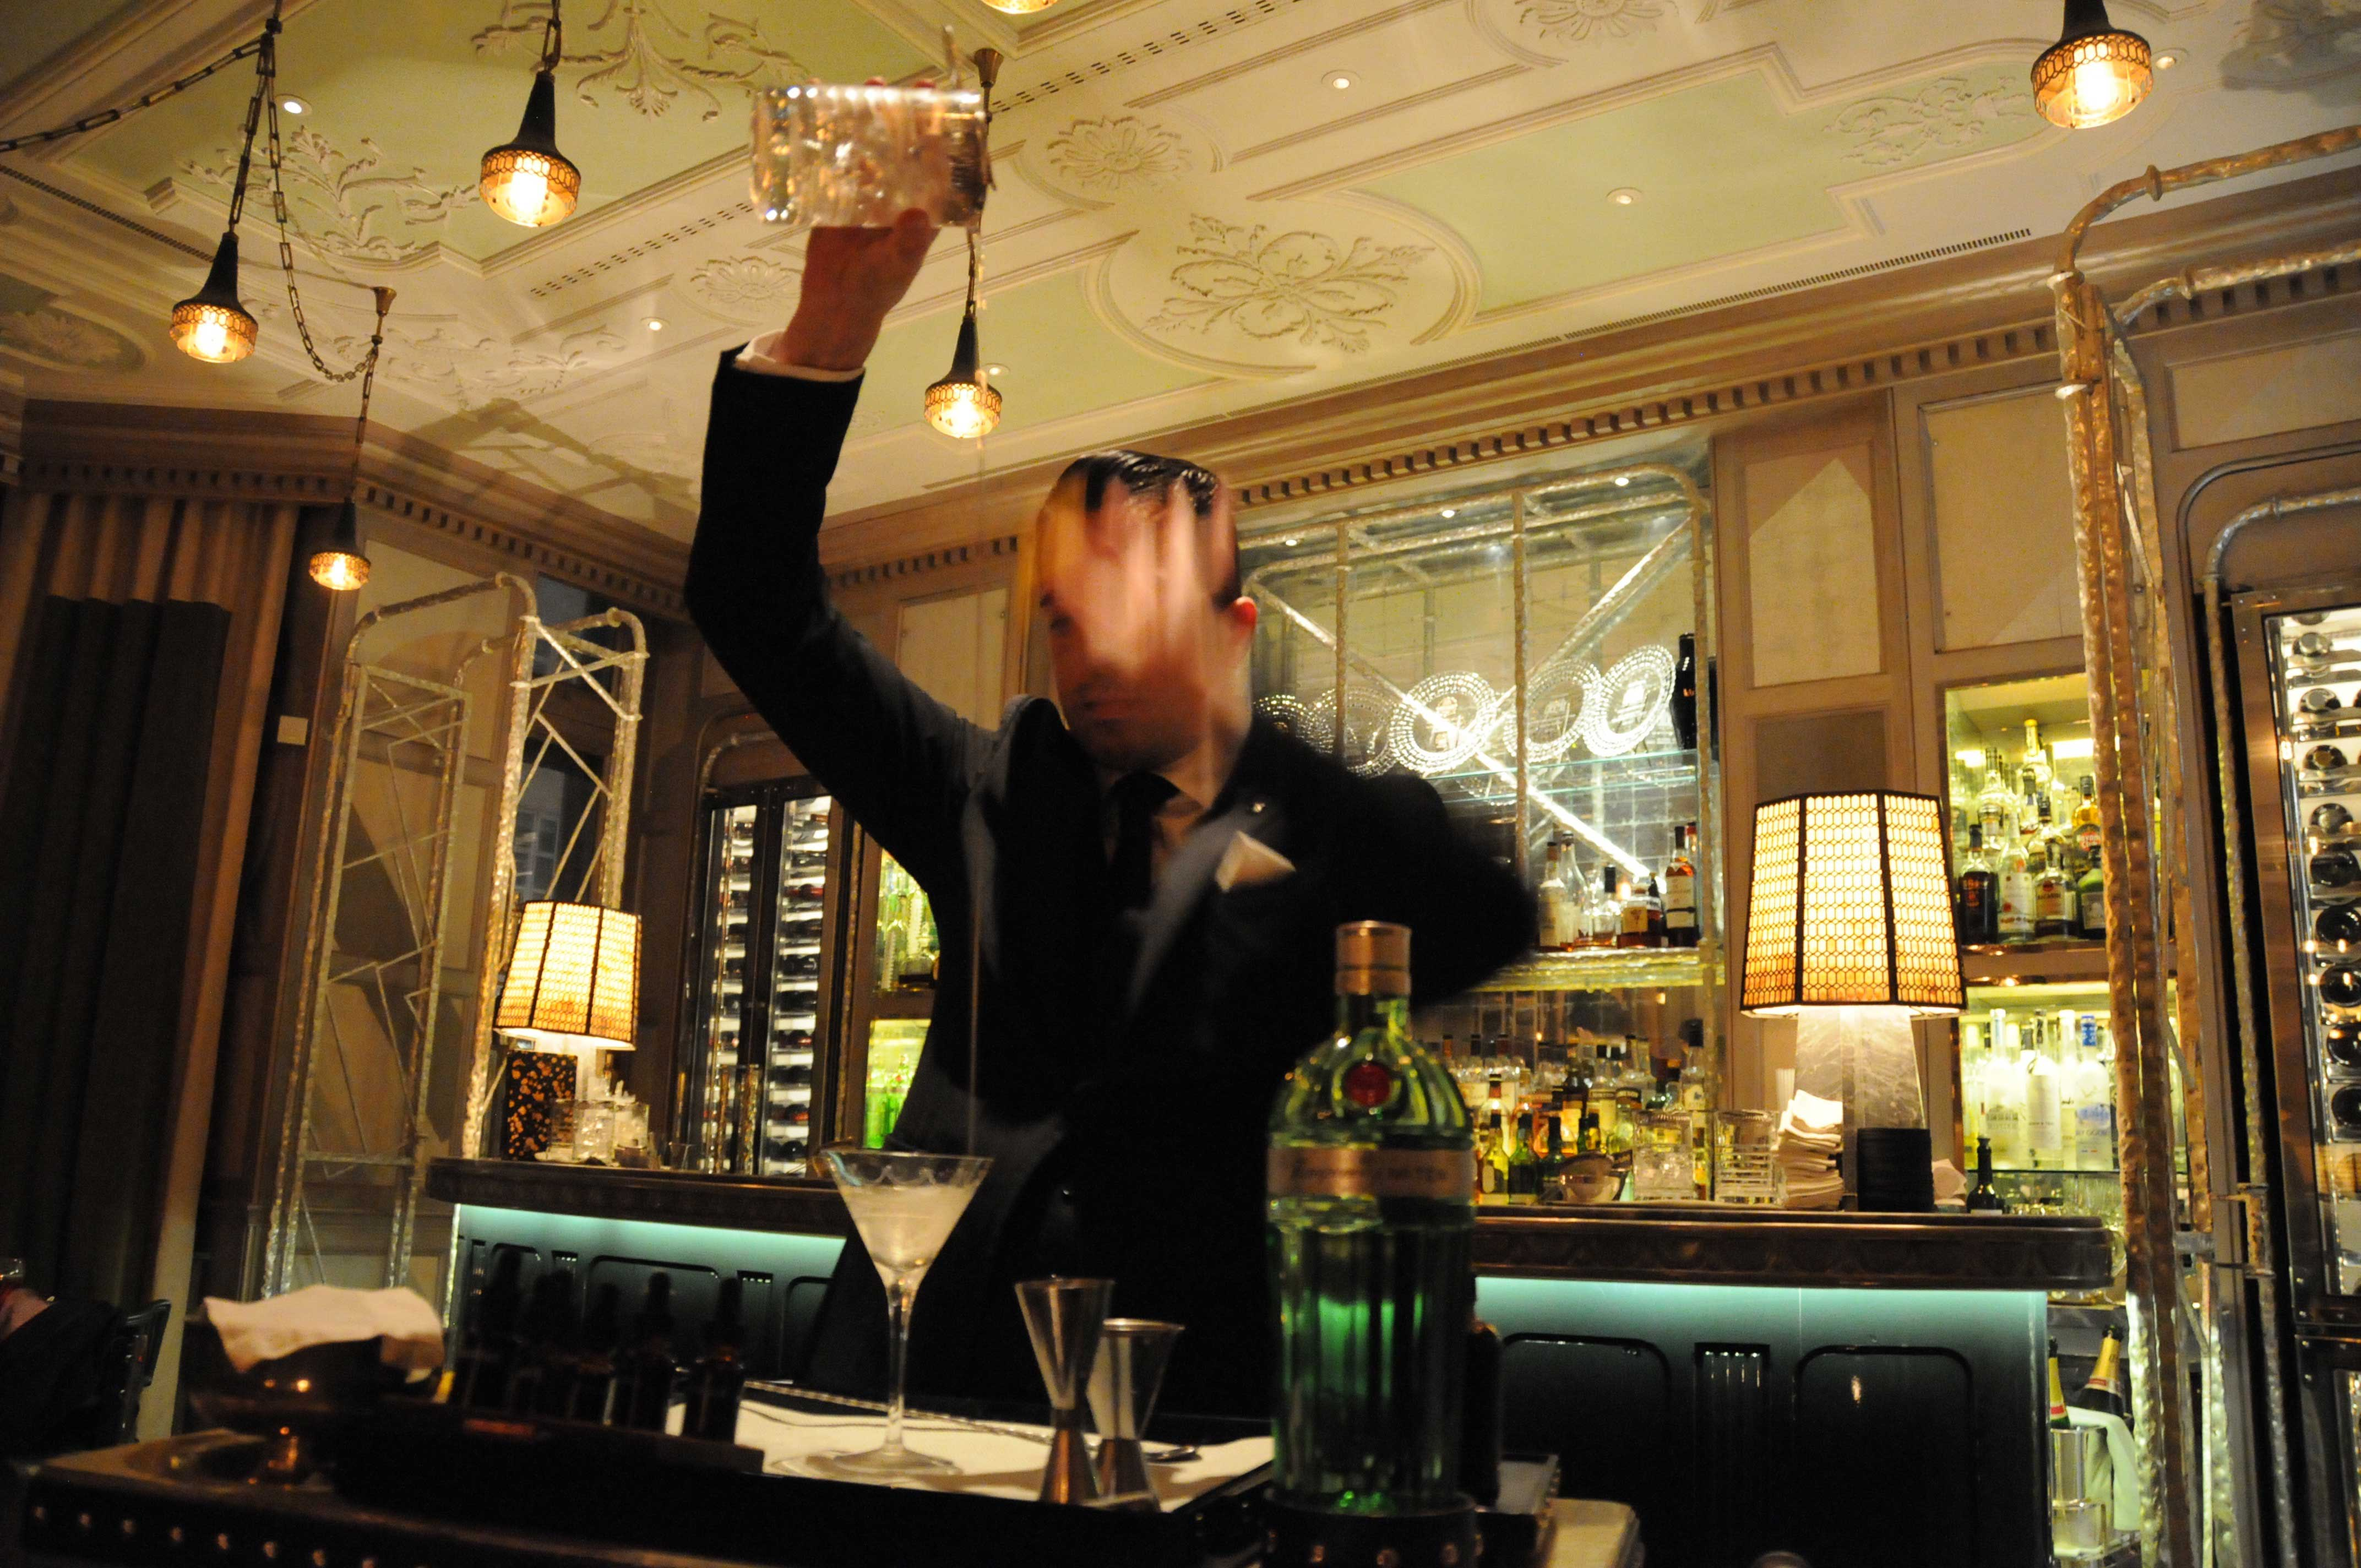 connaught london interiors man pouring drink